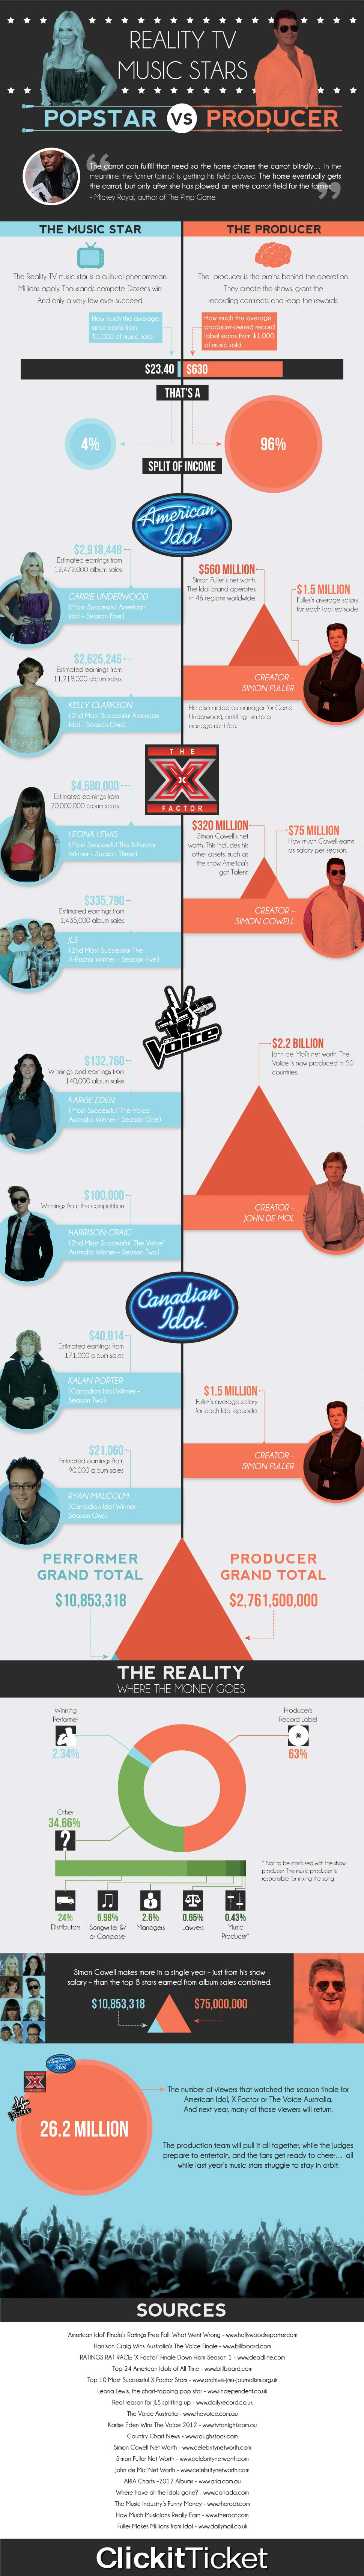 Pop Star vs Producer Earnings-Infographic